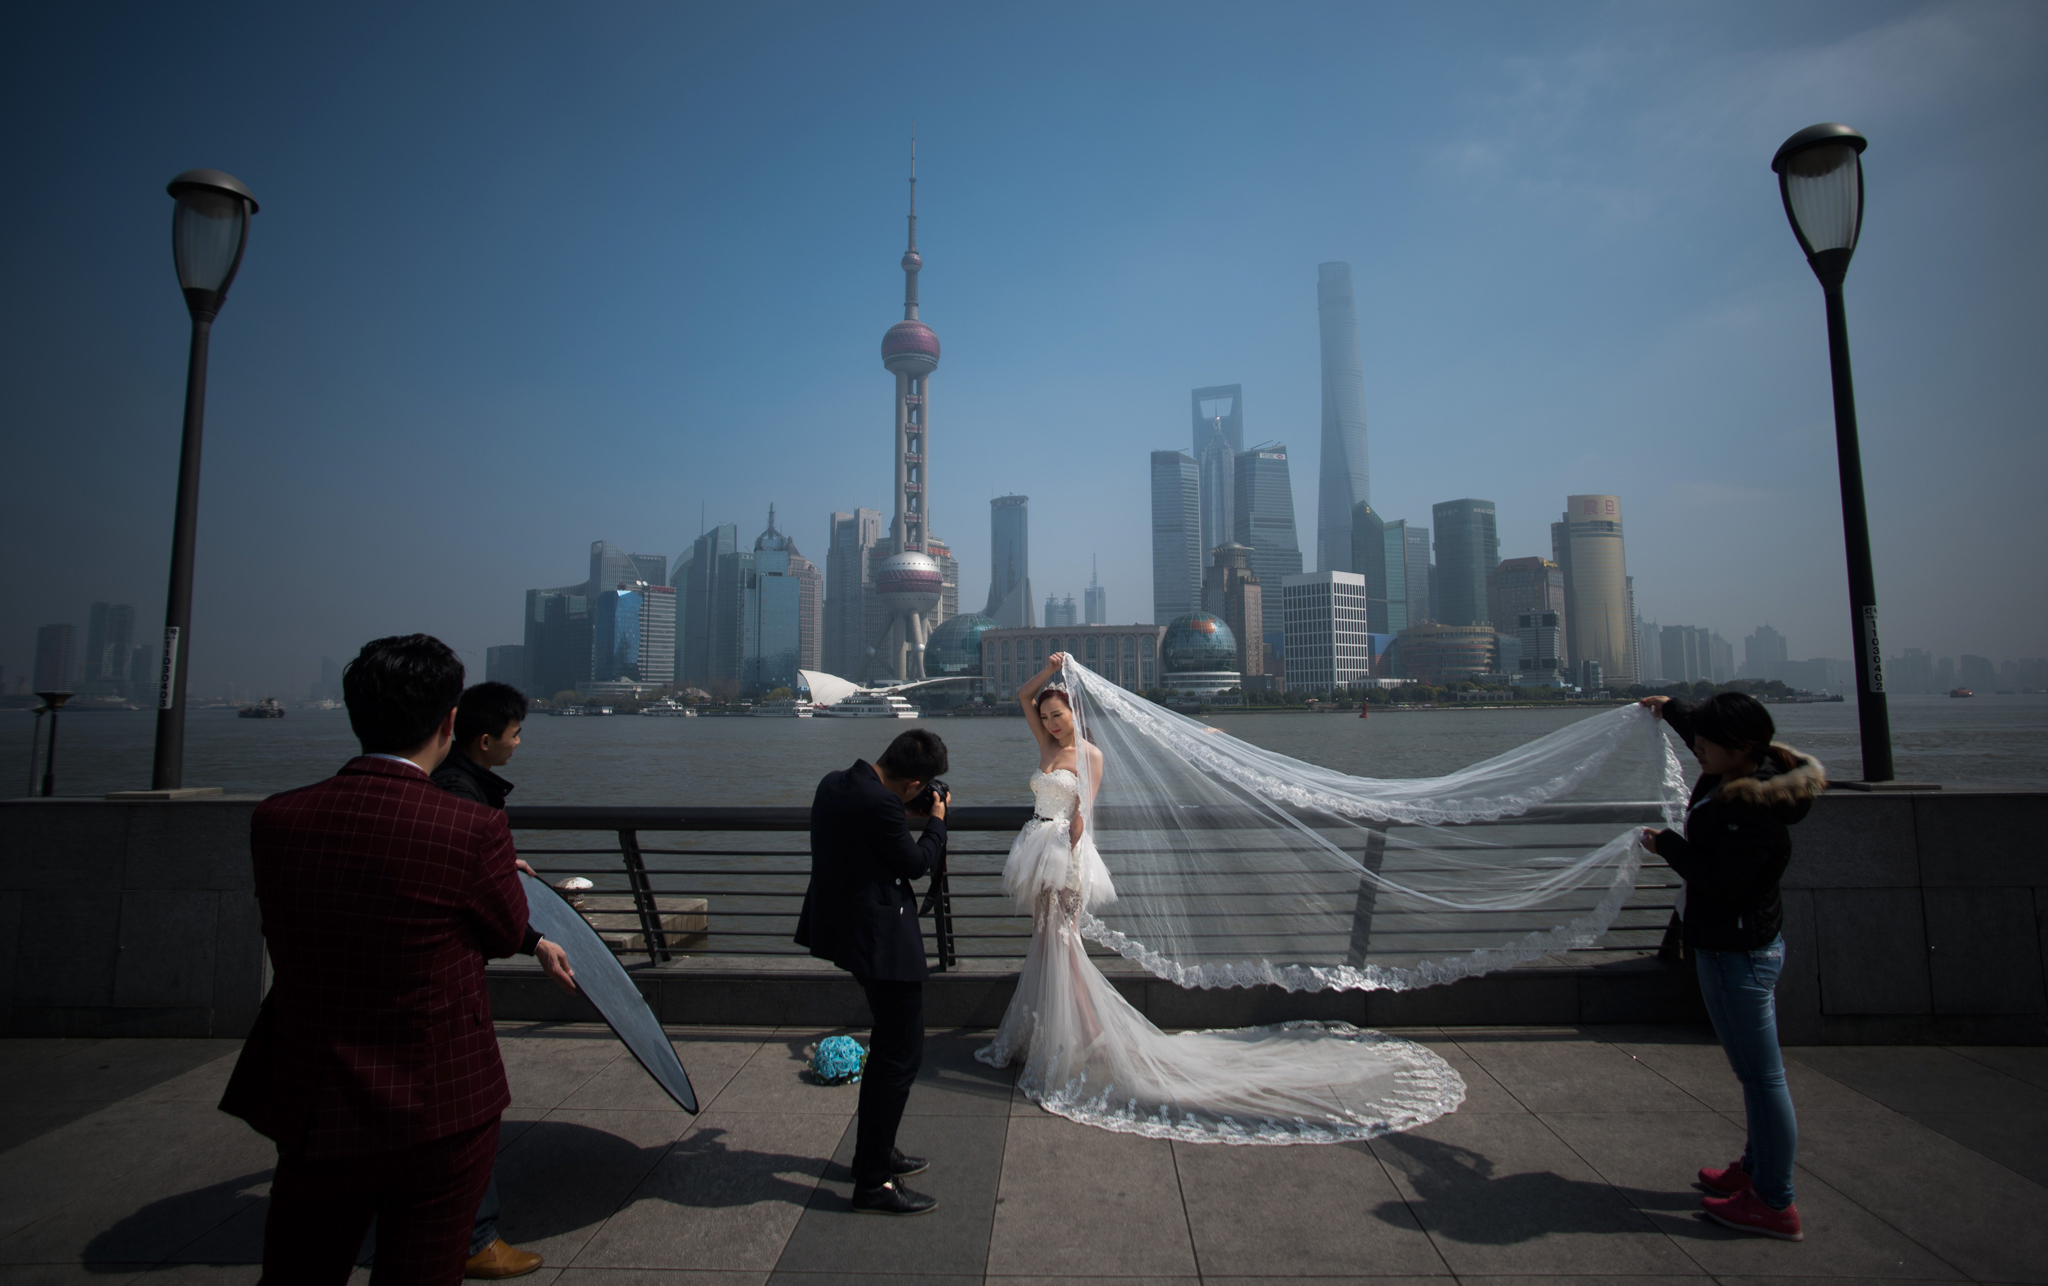 A woman poses for a wedding picture at the Bund in front of the financial district of Pudong in Shanghai on a sunny day on March